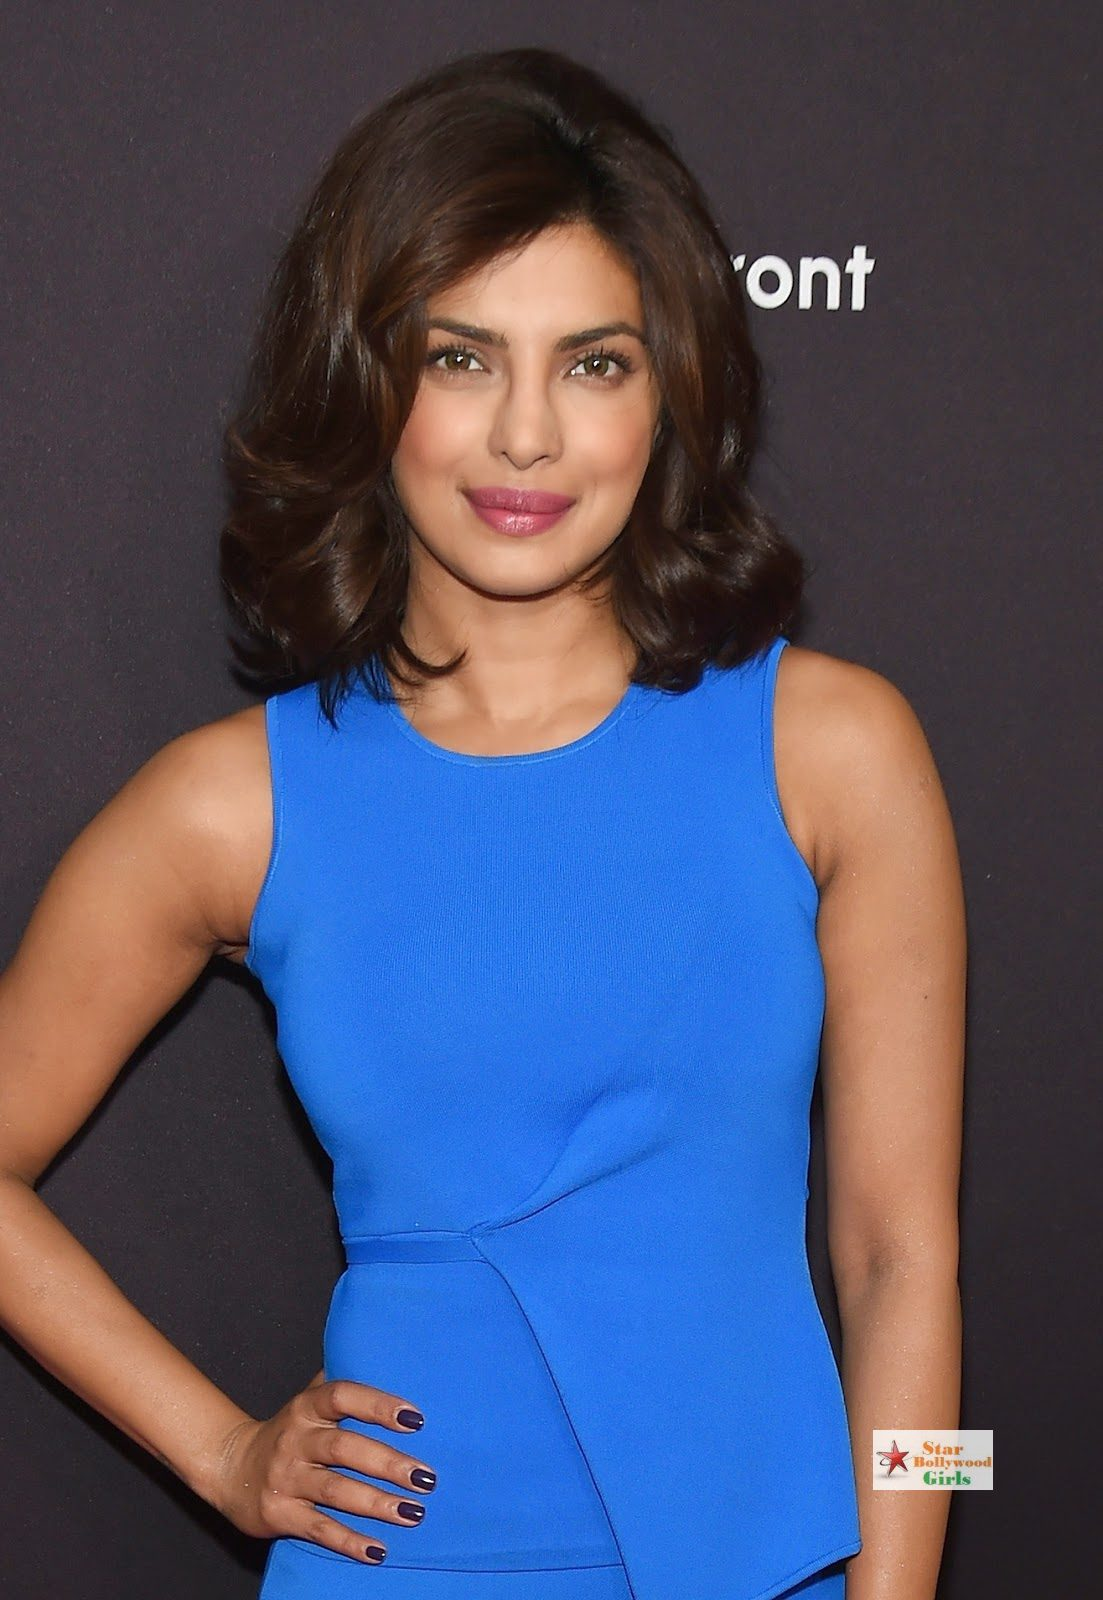 Priyanka Chopra Looks Sexy In Blue Figure Hugging Dress As She Attends The 2015 ABC Upfront At Avery Fisher Hall, Lincoln Center In New York 2